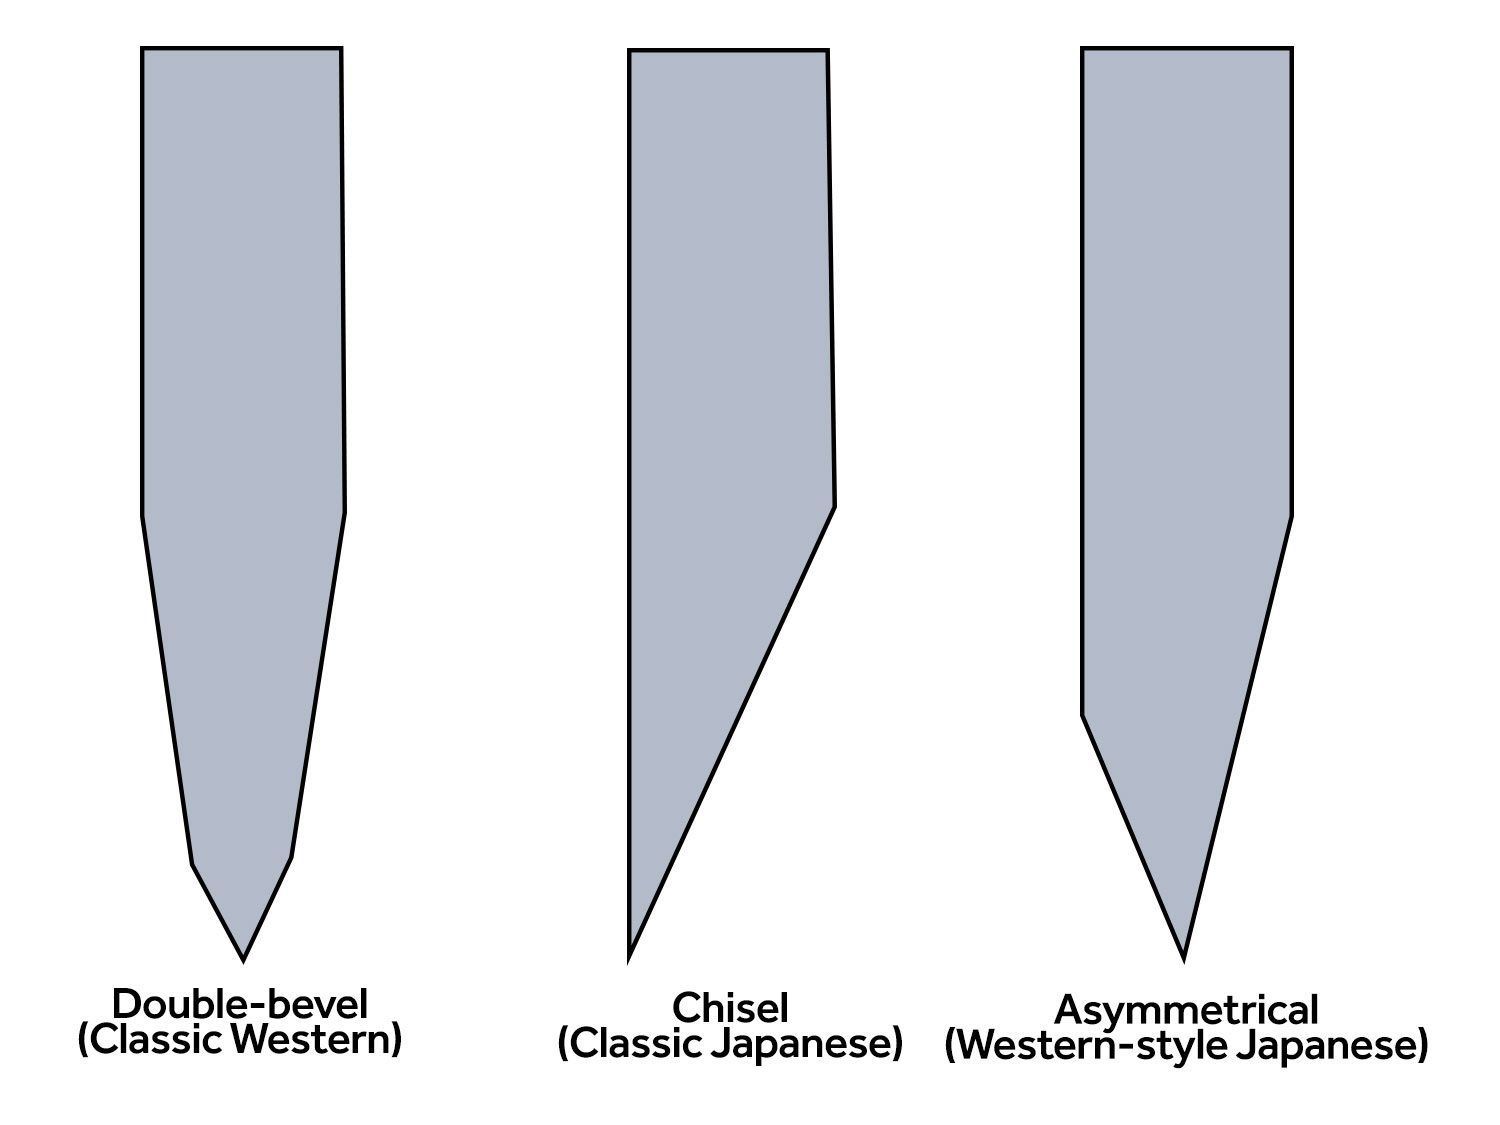 Graphic showing the shape of double-bevel, chisel, and asymmetrical knife edges